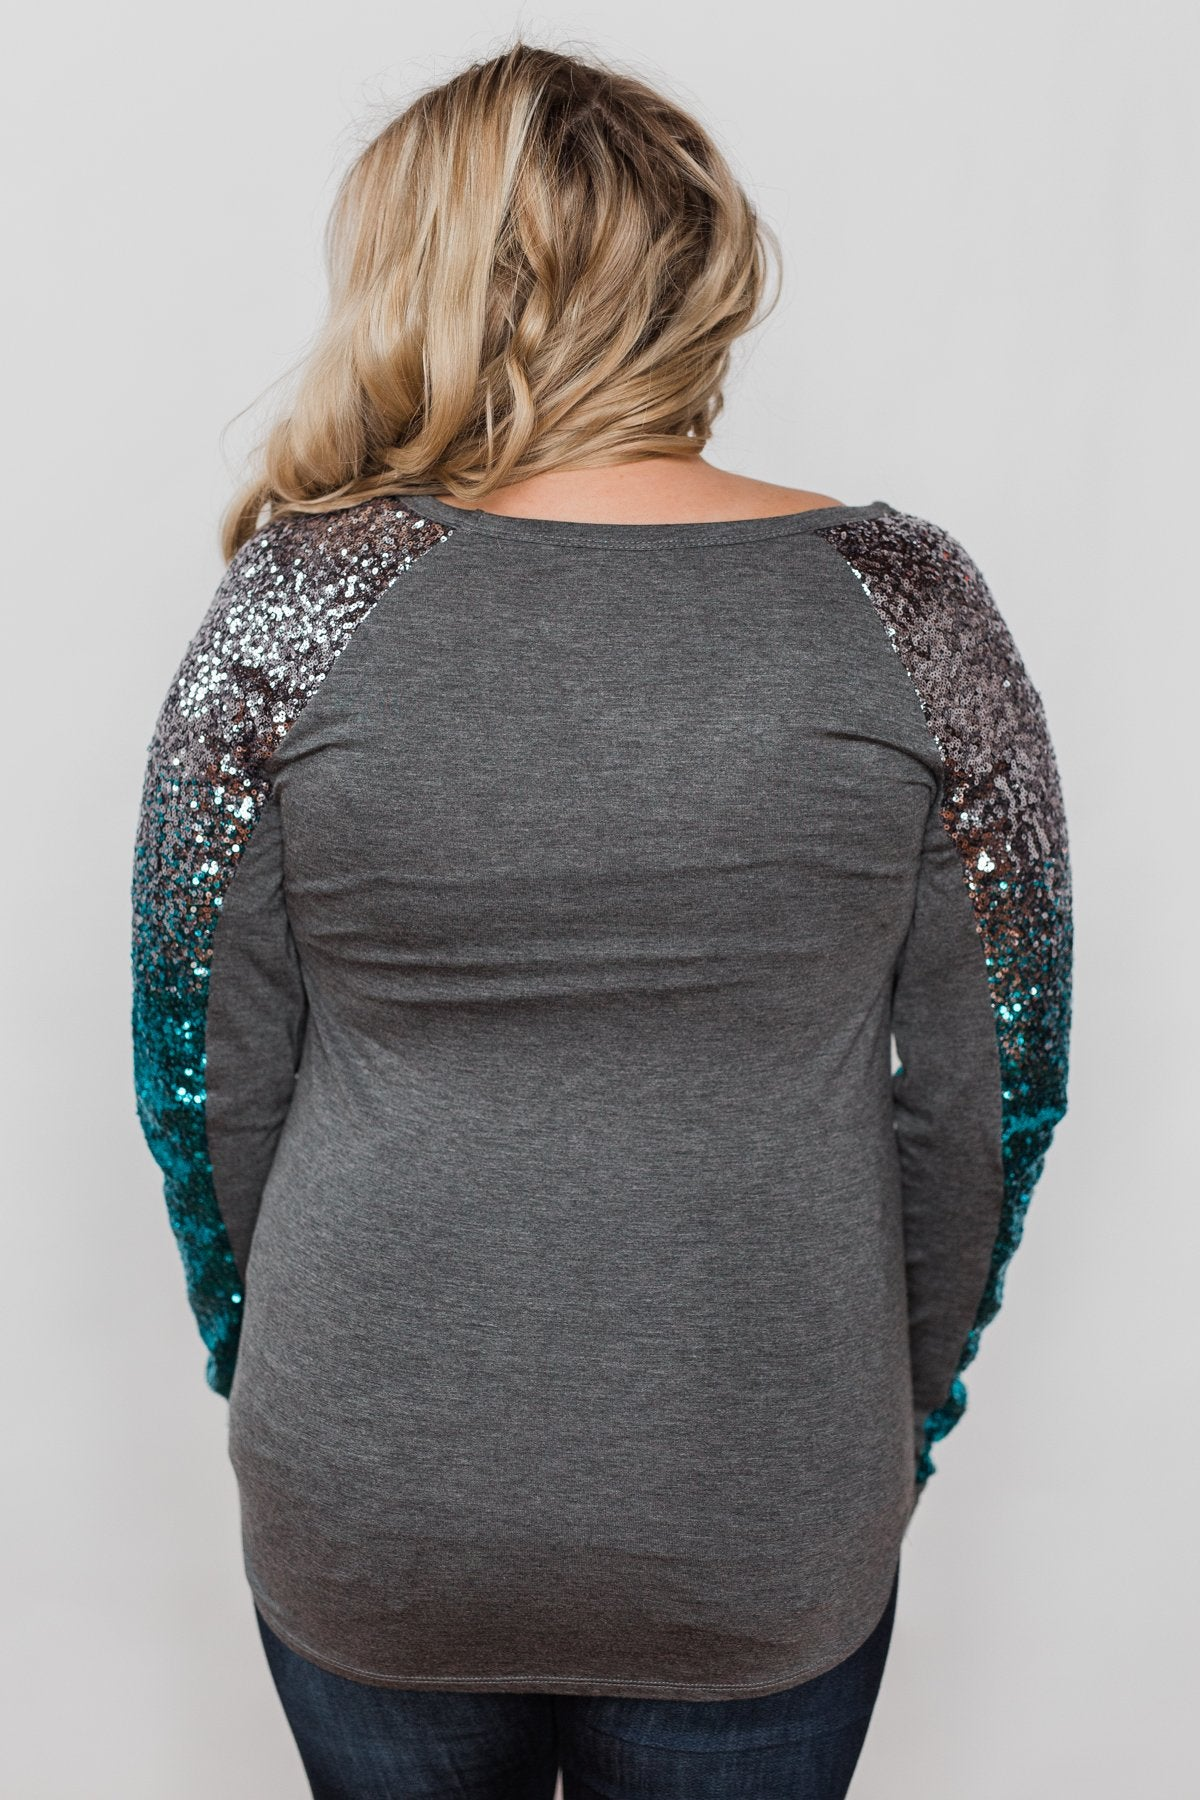 Shine Bright Sequin Top- Charcoal